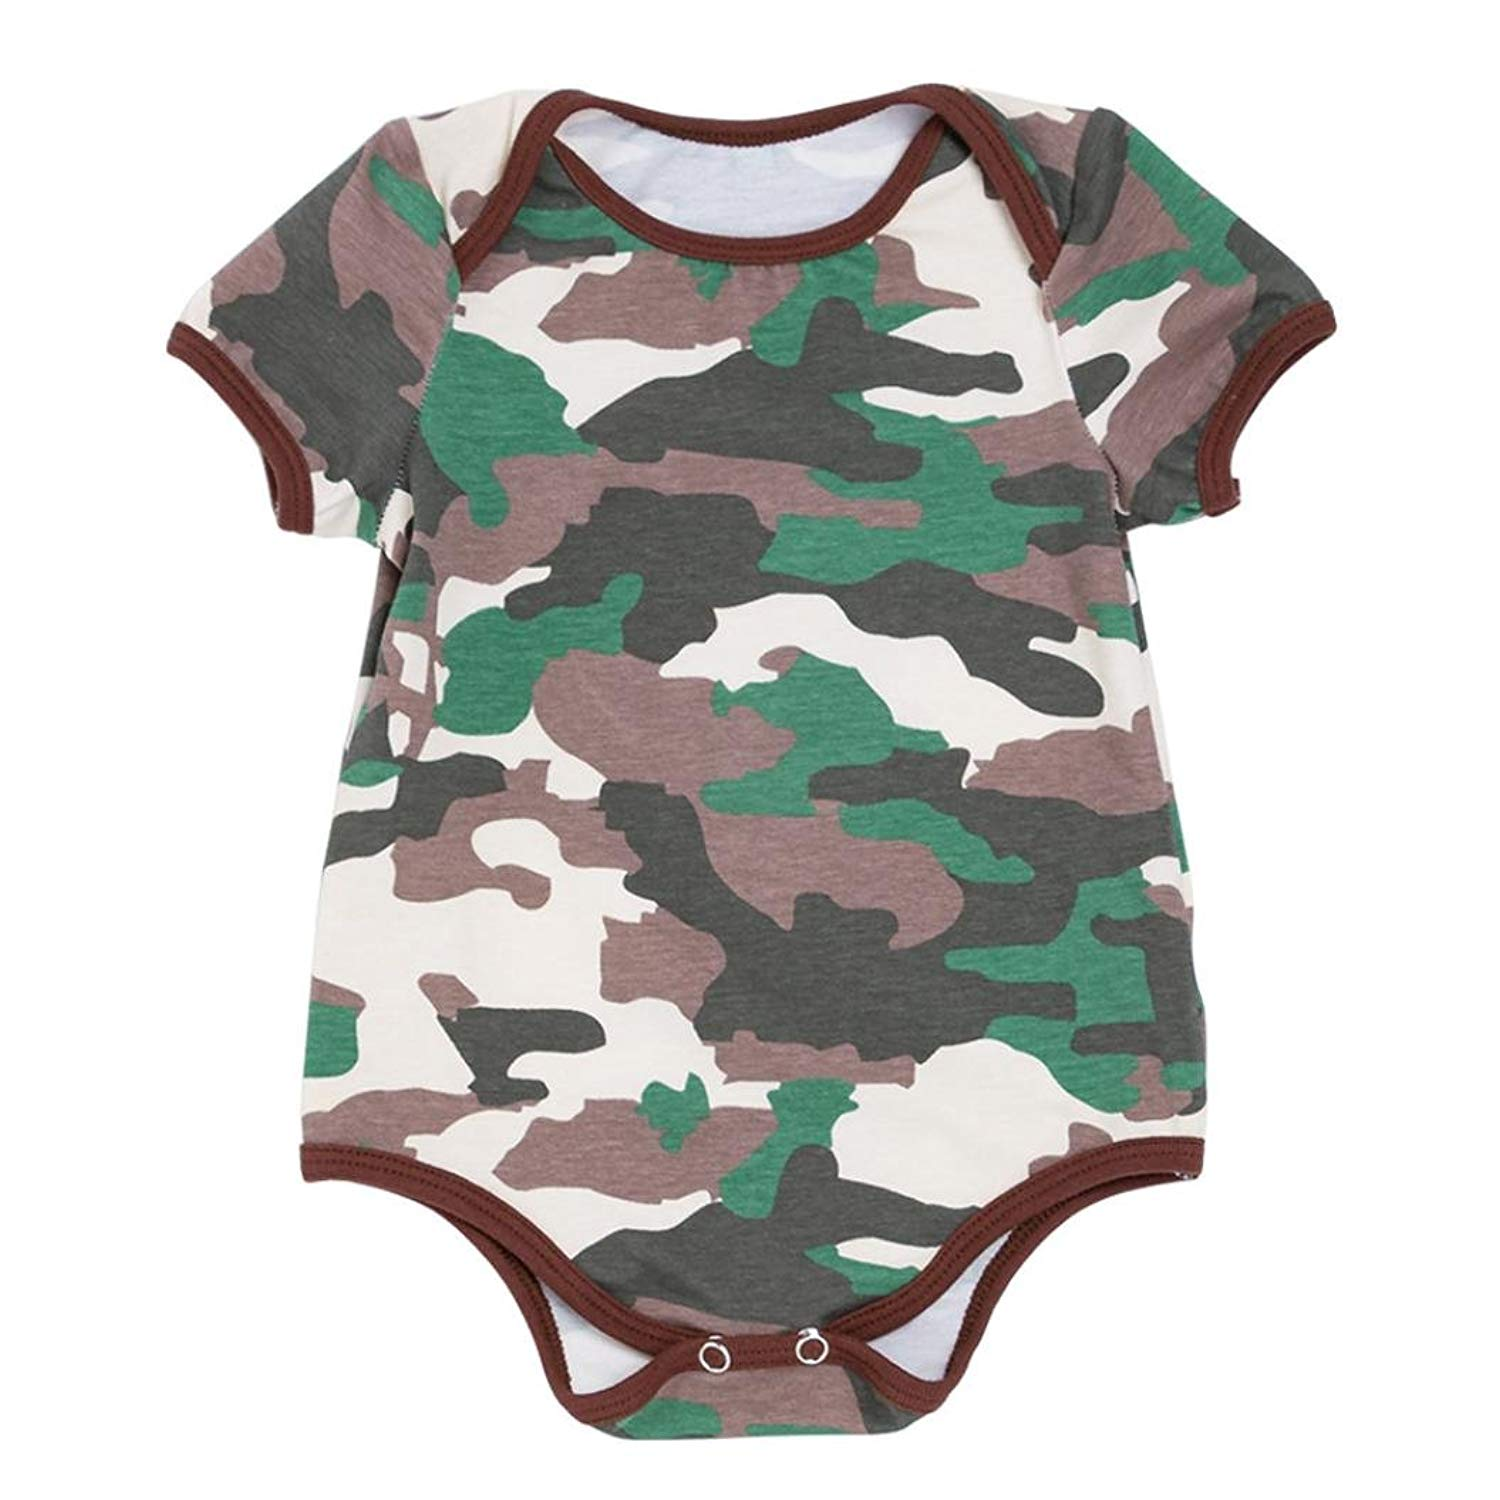 4be159153b0 Get Quotations · OUBAO Baby Romper Summer Toddler Newborn Infant Baby Boy  Girls Summer Camouflage Rompers Outfits Clothes